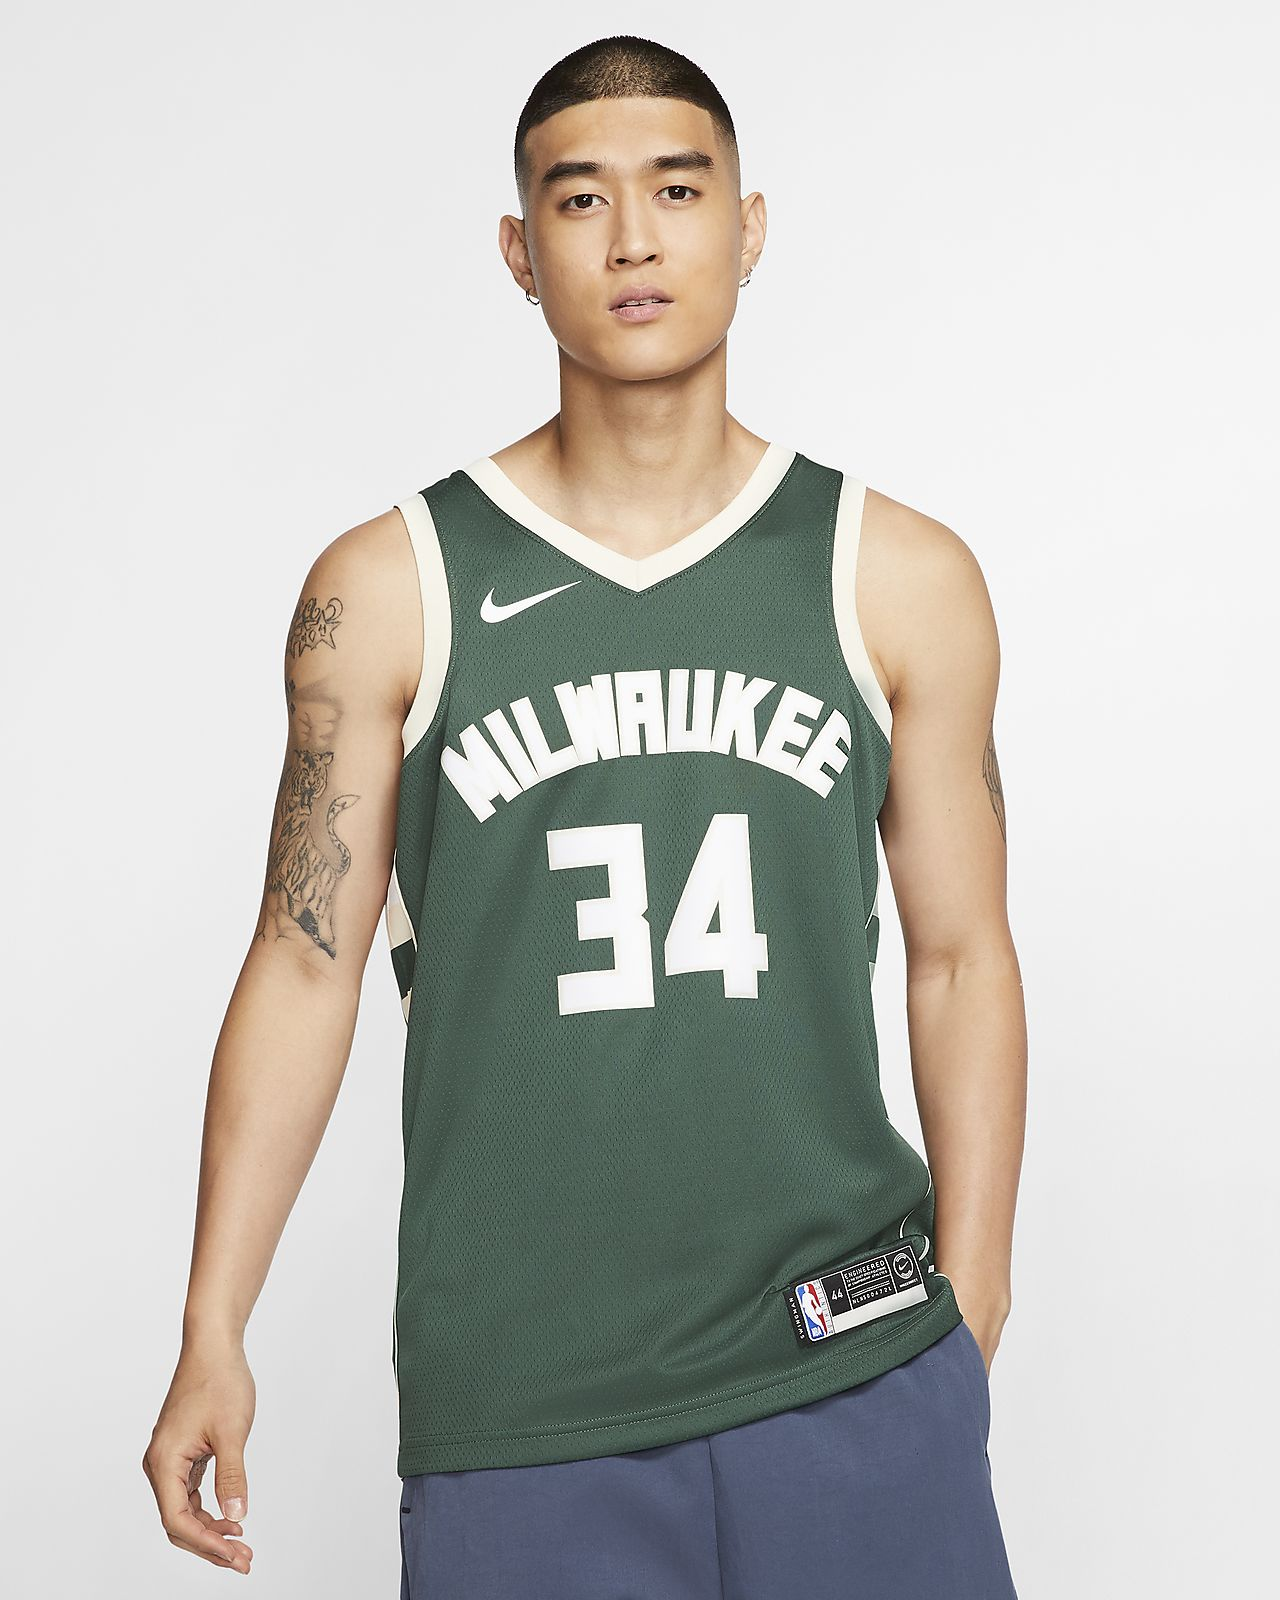 Camiseta conectada Nike NBA para hombre Giannis Antetokounmpo Icon Edition Swingman (Milwaukee Bucks)